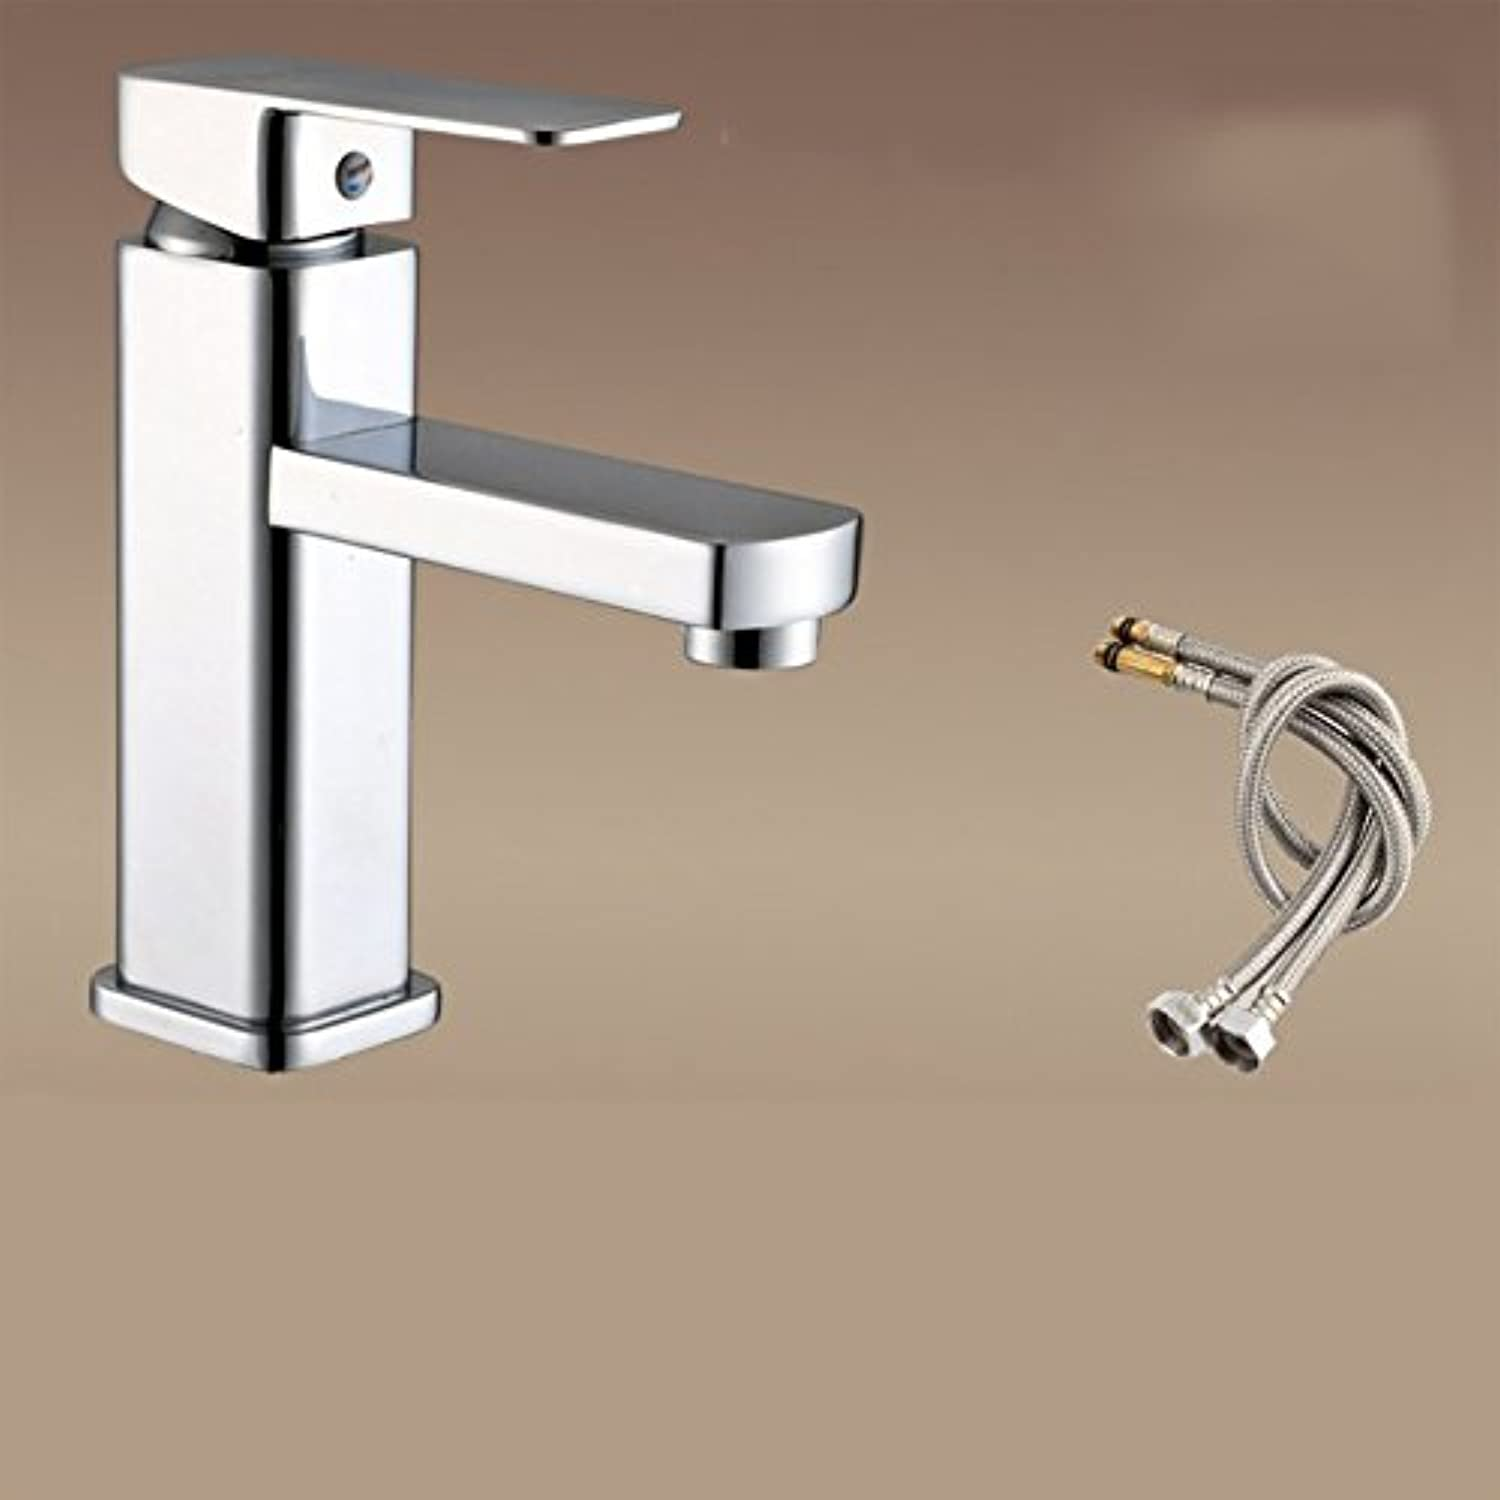 Hlluya Professional Sink Mixer Tap Kitchen Faucet Single Handle single hole bathroom faucet, hot and cold